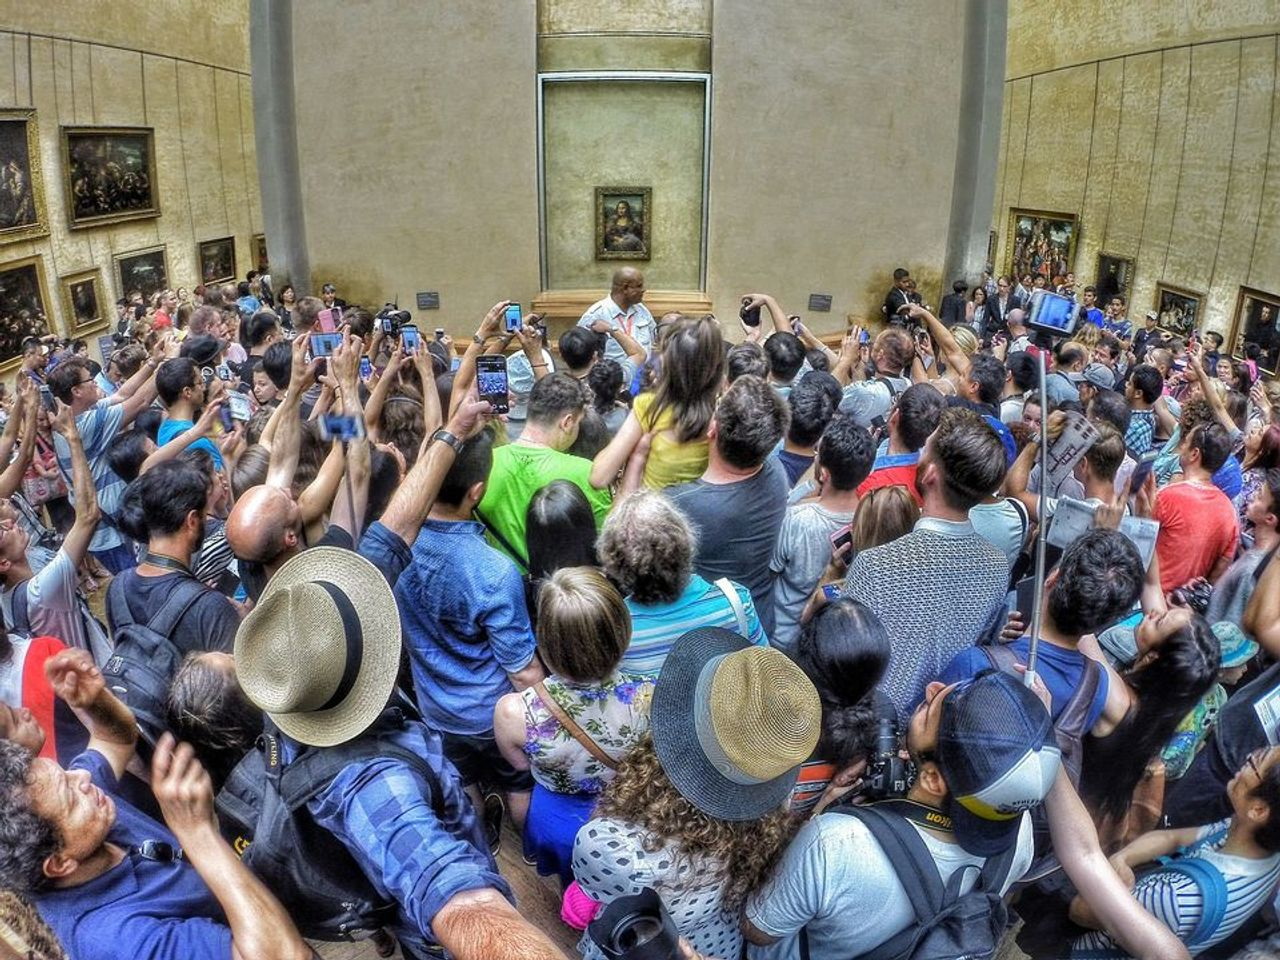 Packing them in? Crowds jostle to see the Mona Lisa at the Louvre Photo: Max Fercondini